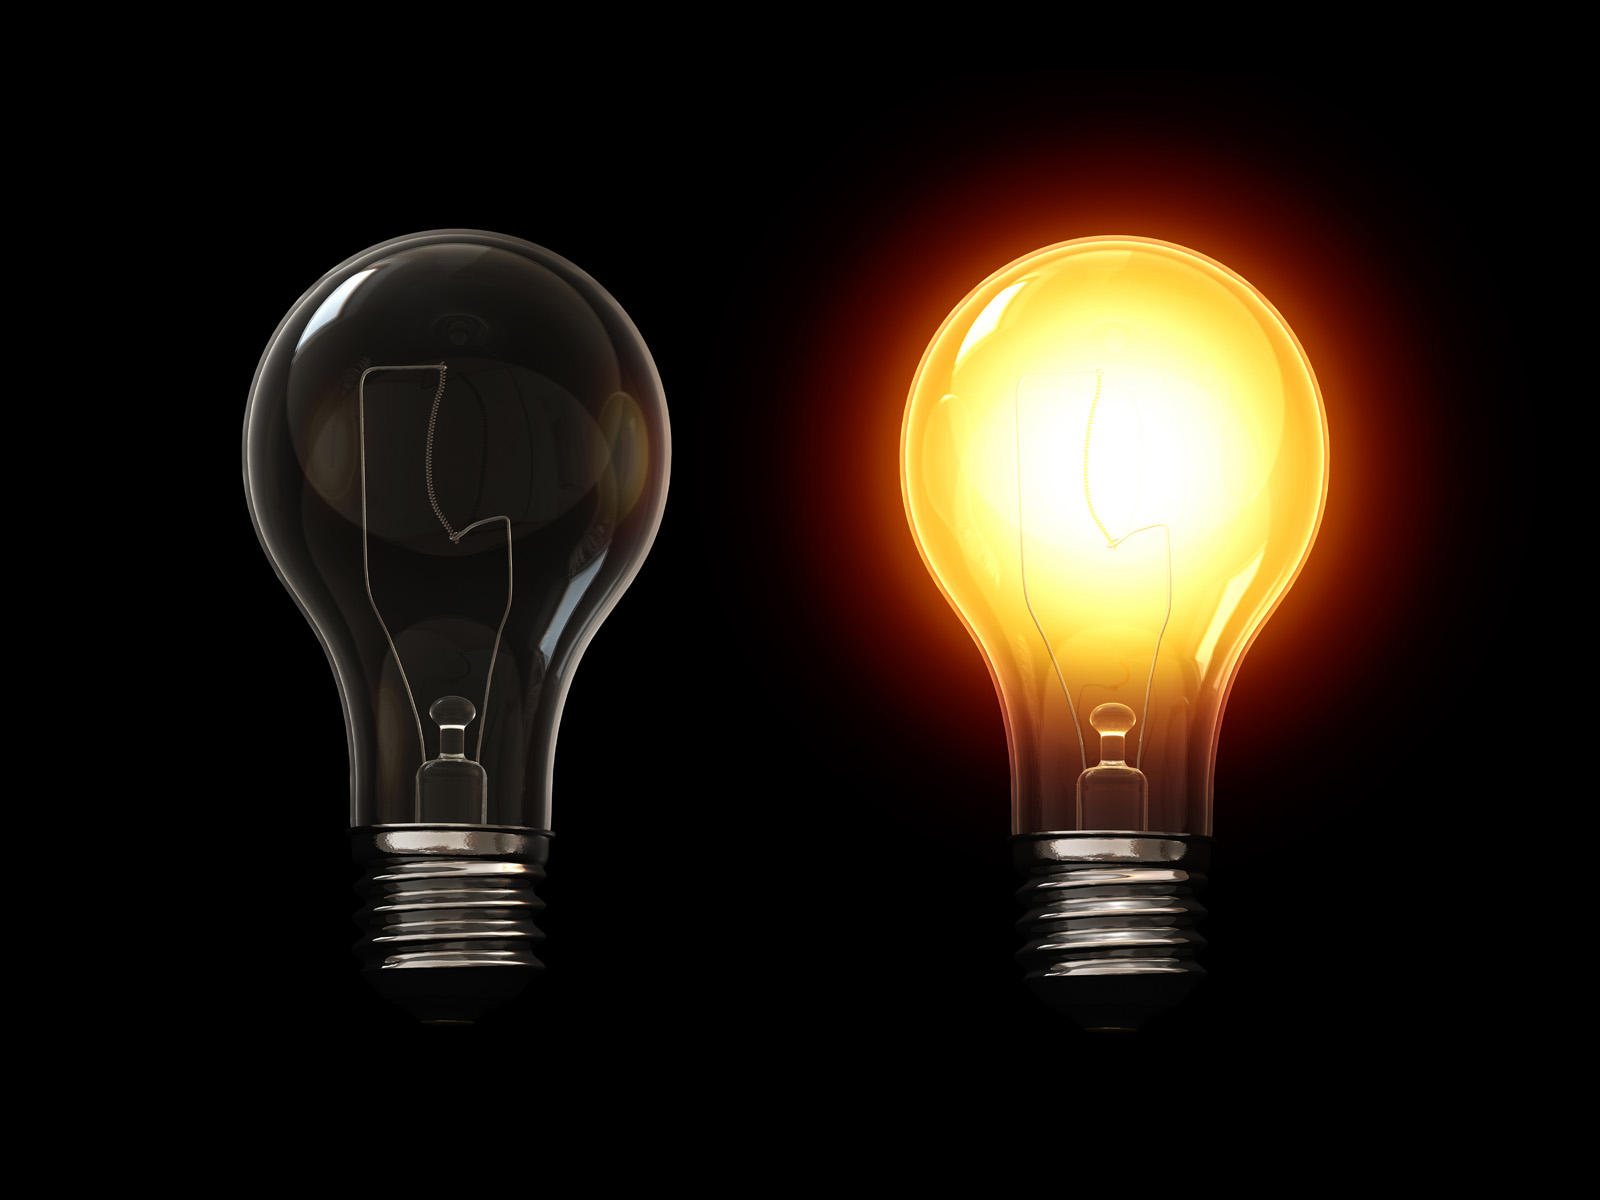 Dark room with light bulb - There Are Three Switches Outside Of A Dark Room Each Corresponds To One Of The Three Light Bulbs In The Dark Room You Can Turn The Switches On And Off And